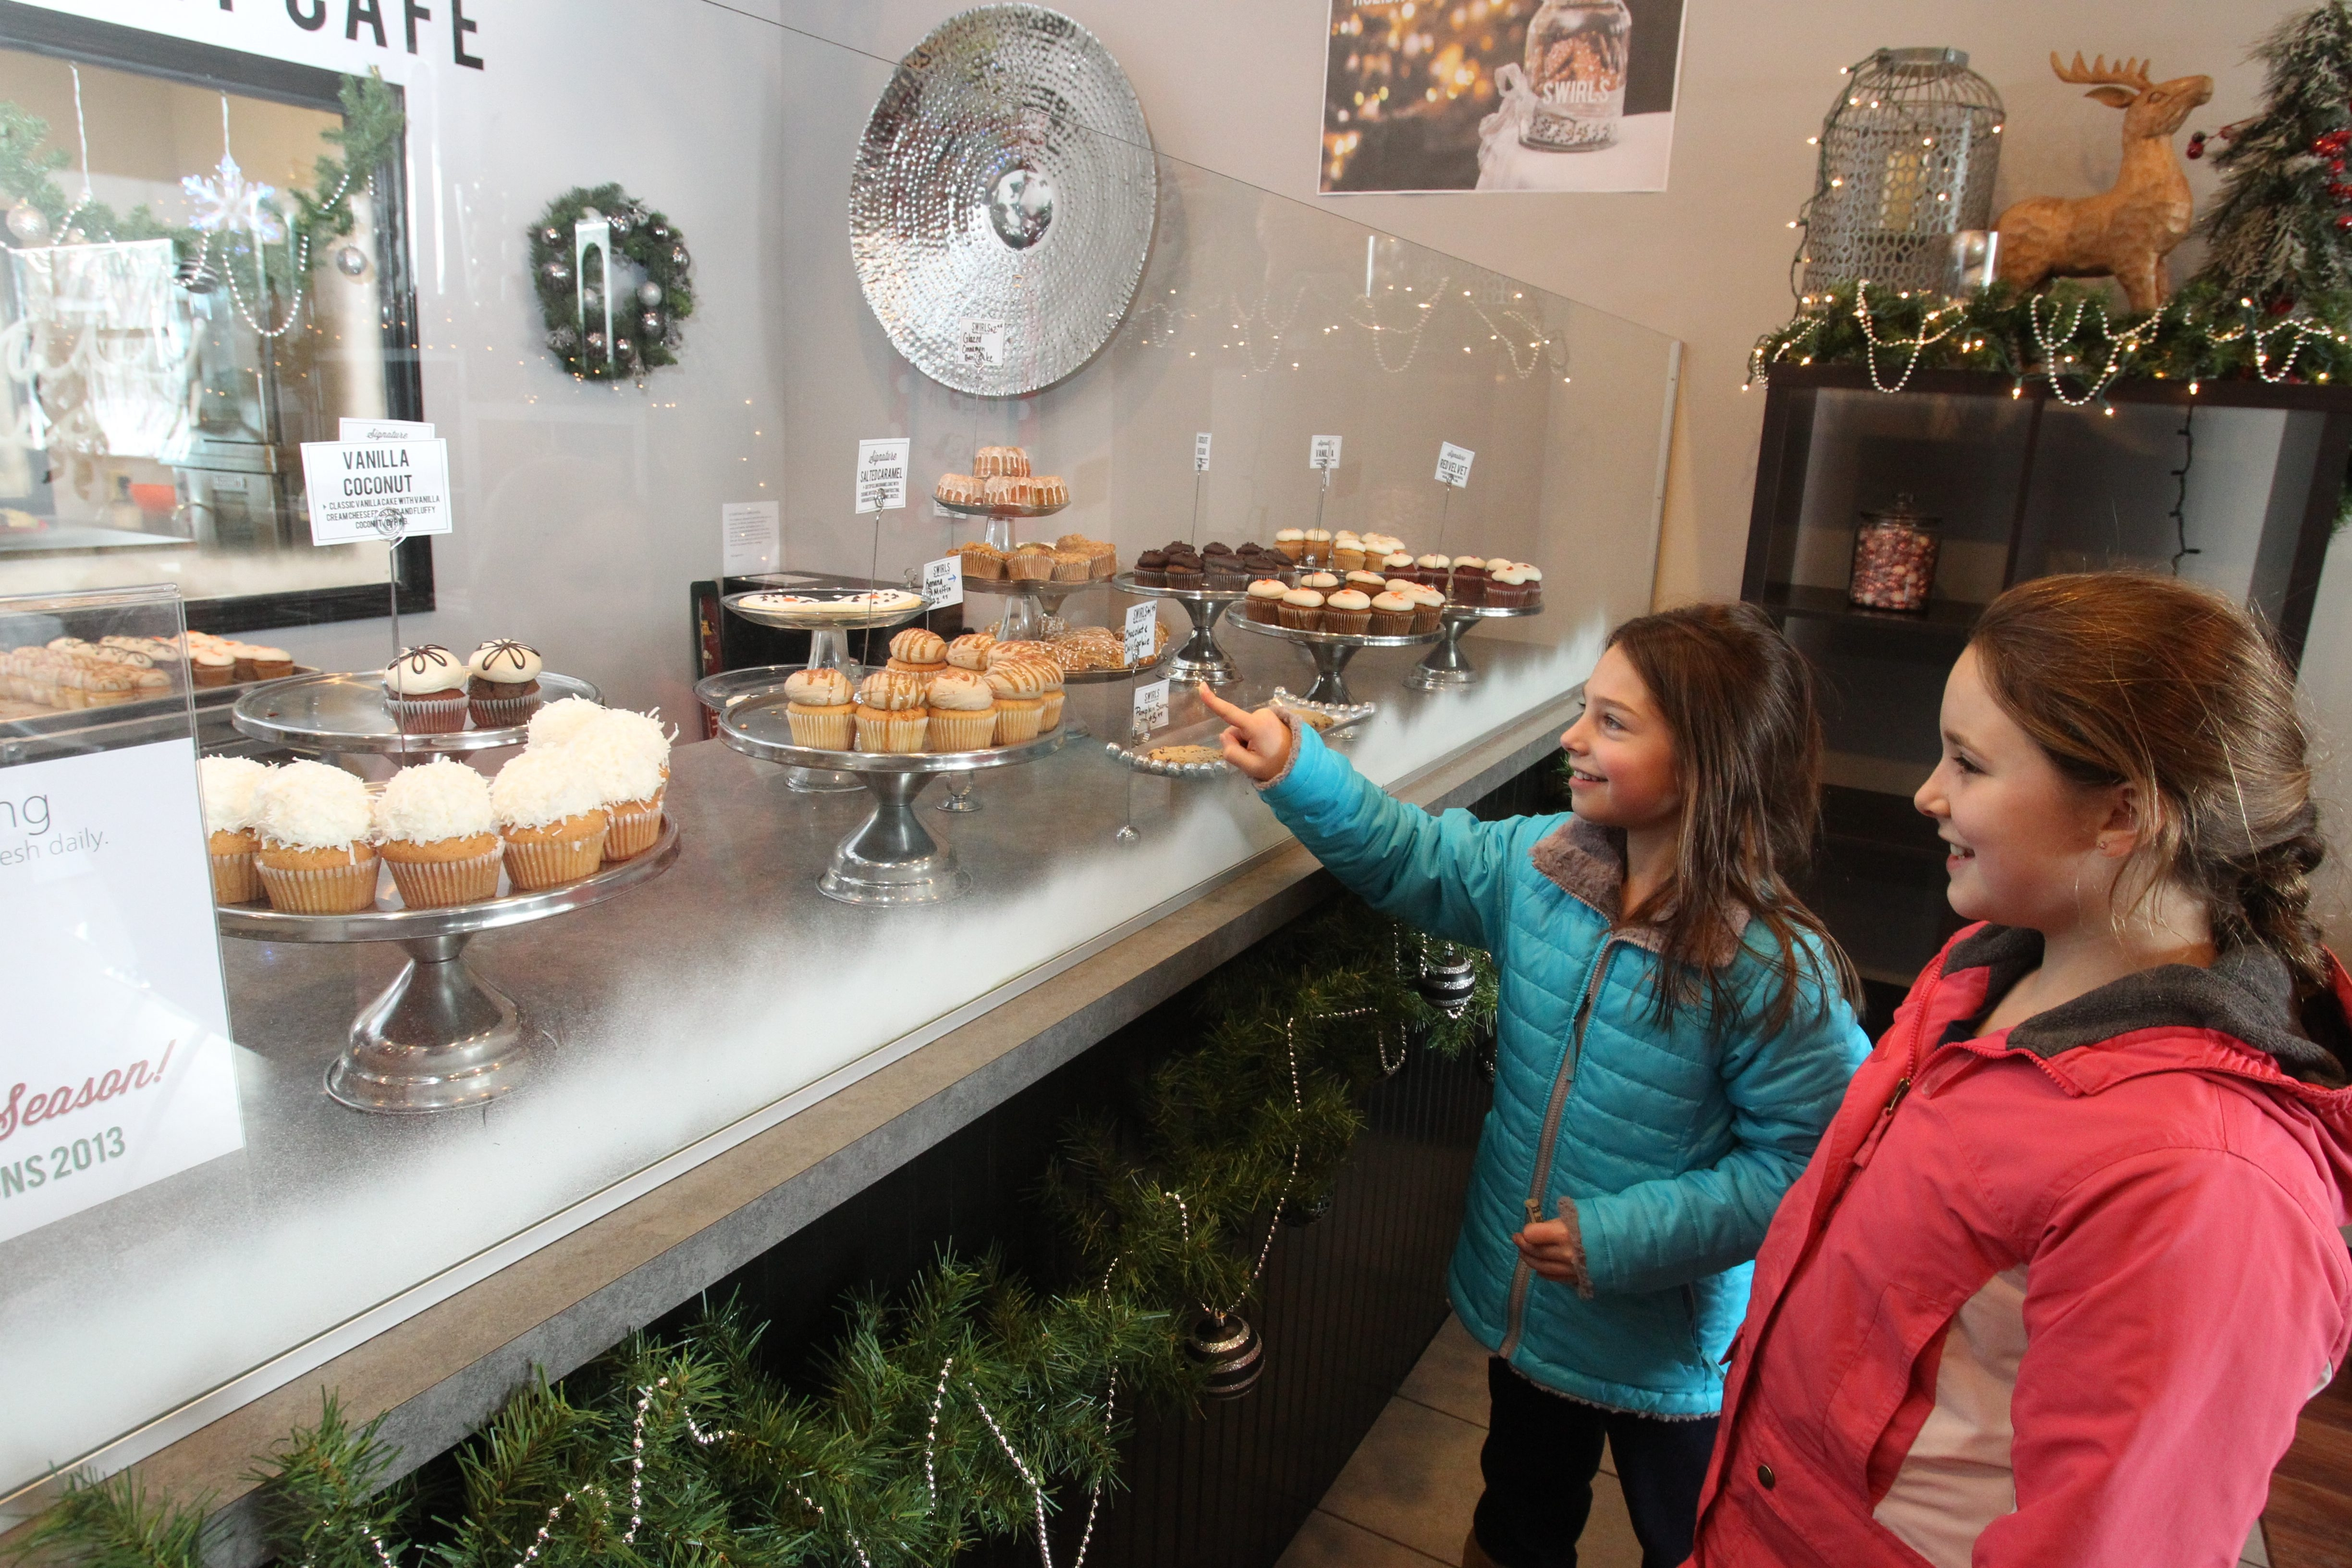 """Alexa Hausaner, 10, picks a cupcake as Kayla Baines, 9, looks on at Swirls Market Cafe in East Aurora on """"Small Business Saturday."""""""